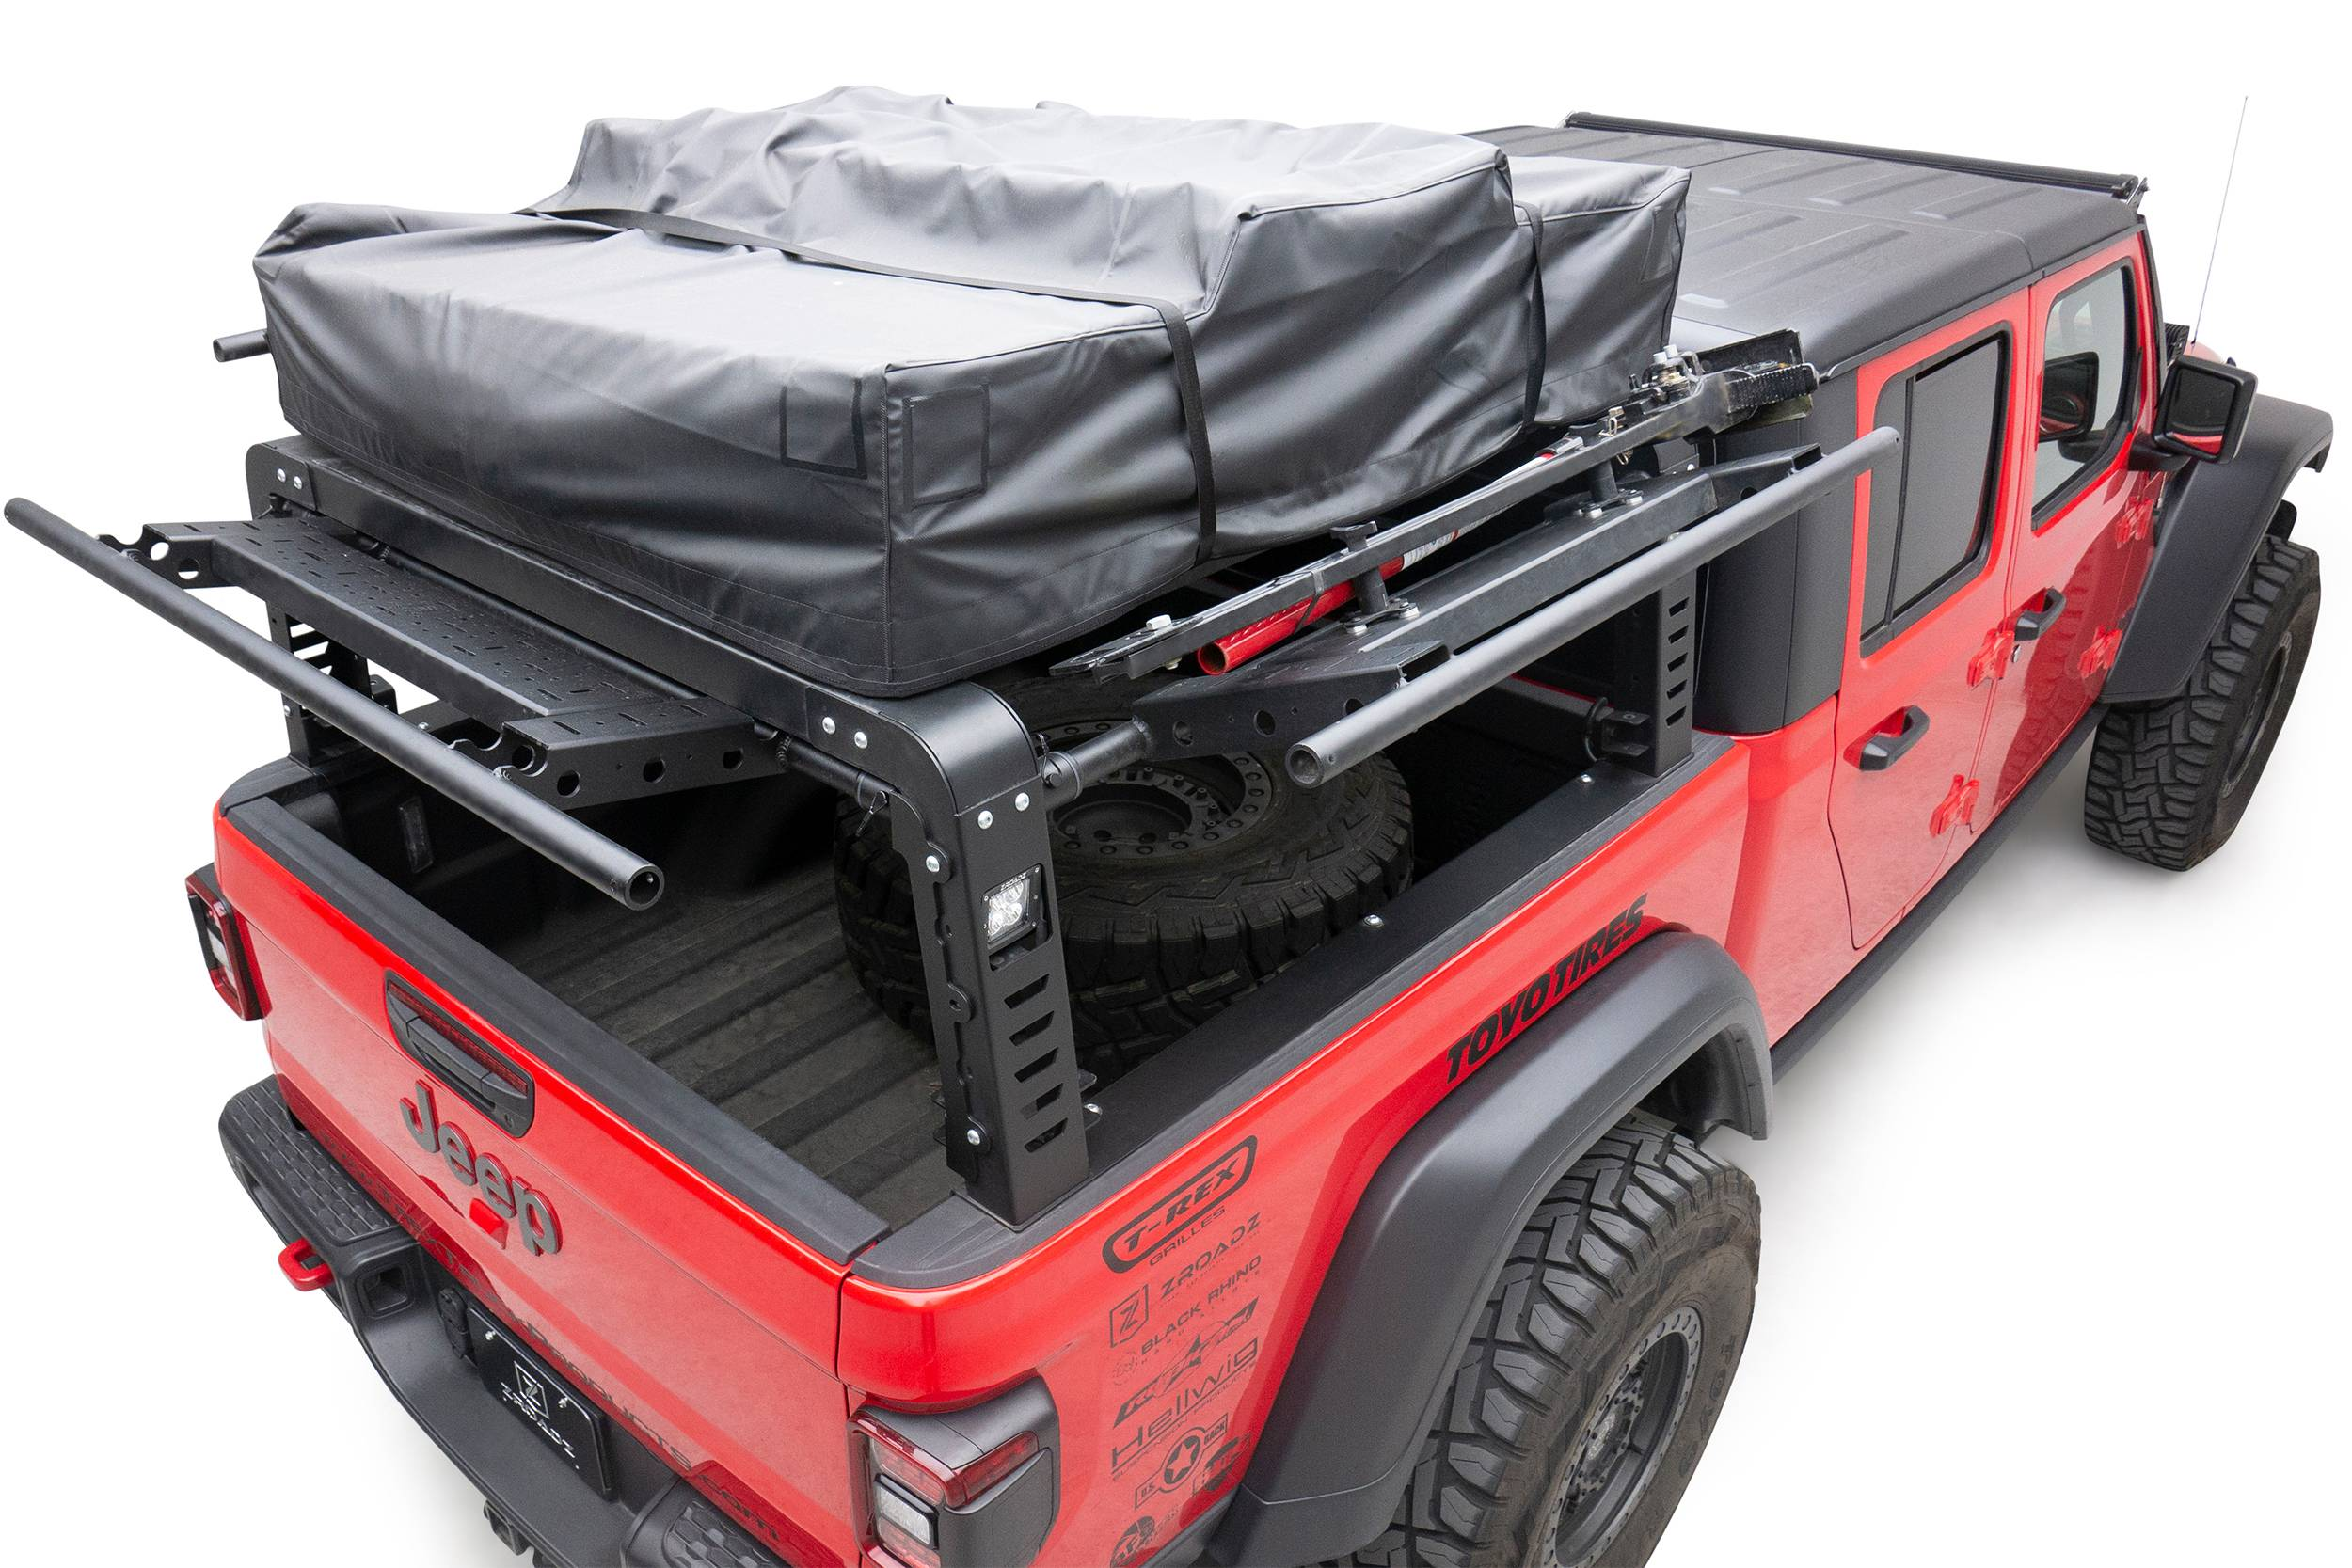 2019 2021 Jeep Gladiator Access Overland Rack With Three Lifting Side Gates Without Factory Trail Rail Cargo System Pn Z834201